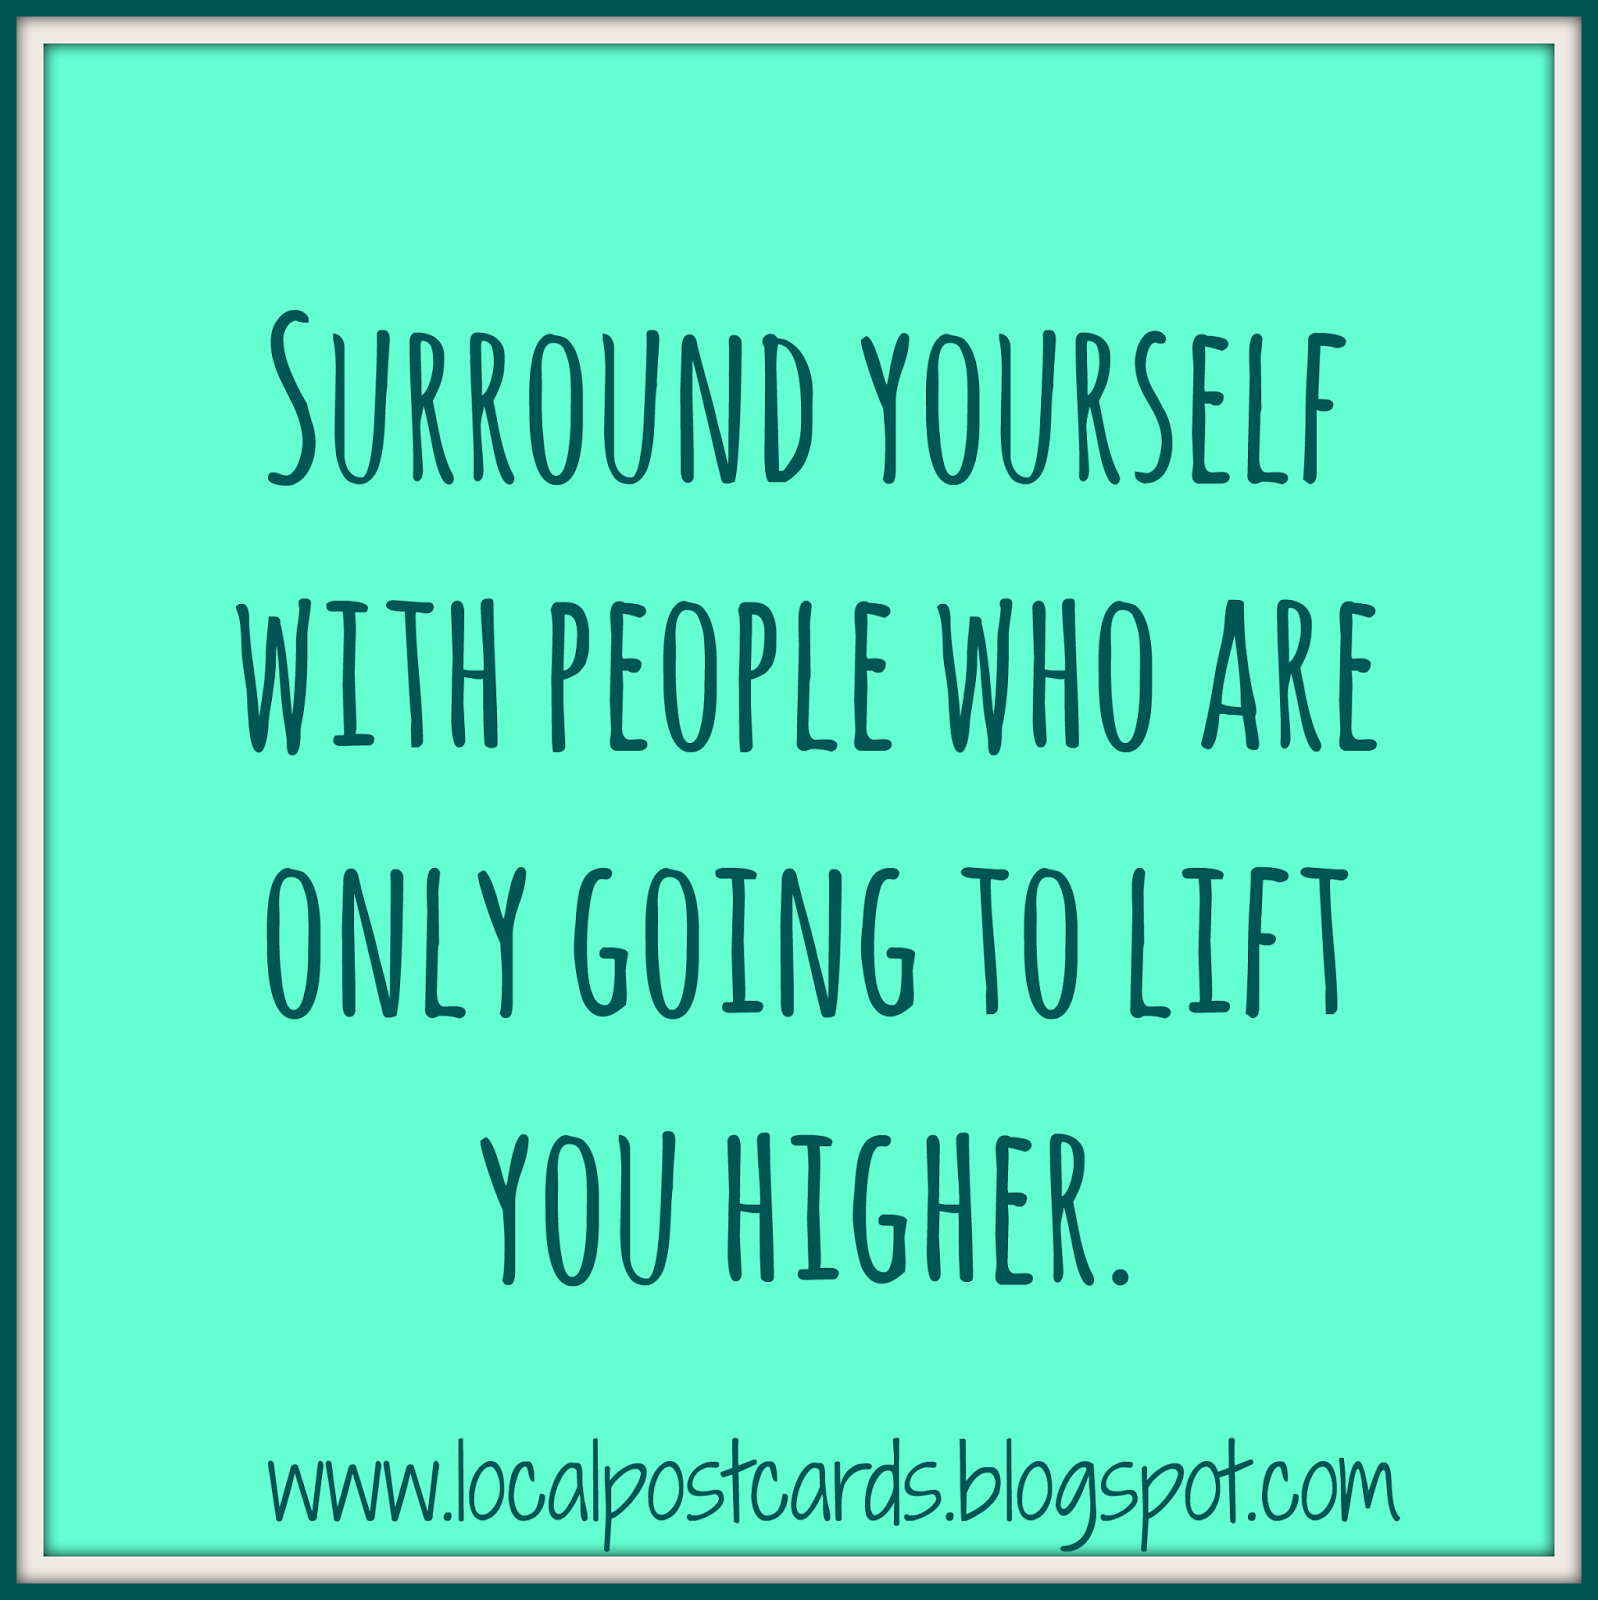 Surround Yourself with people who are only going to lift you higher